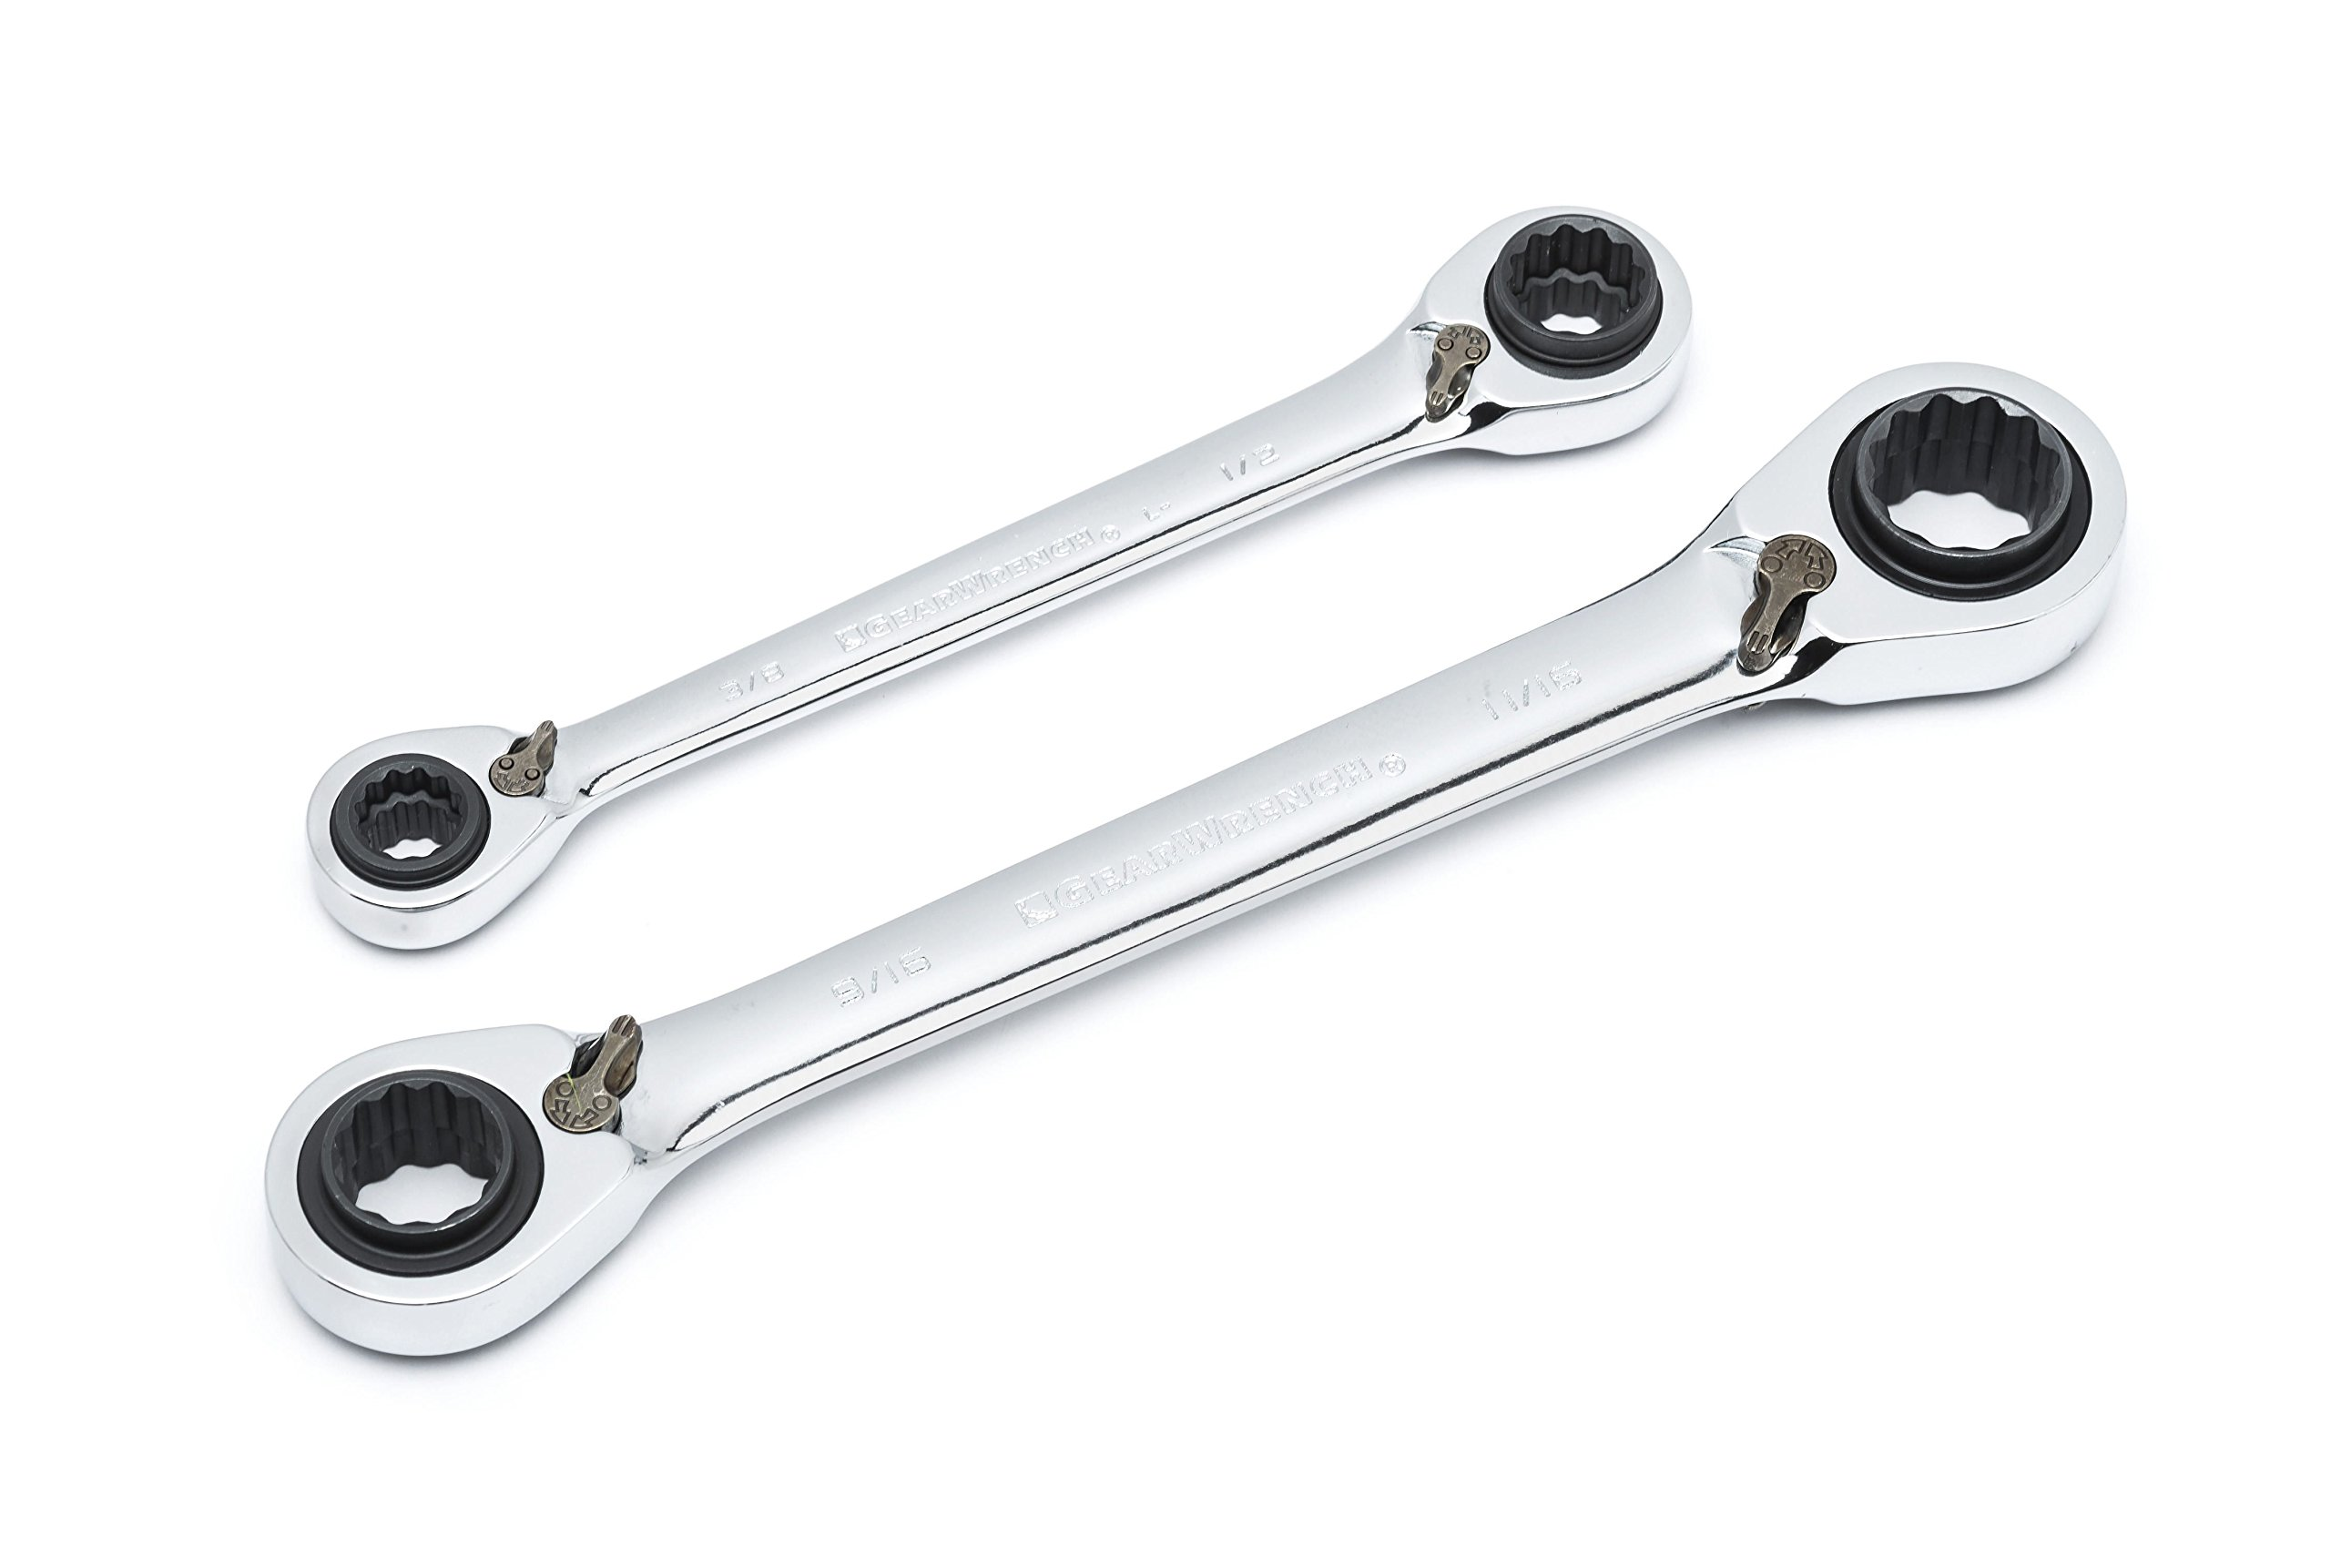 GEARWRENCH 2 Pc. 12 Point QuadBox Reversible Double Box Ratcheting SAE Wrench Set - 85900 by GearWrench